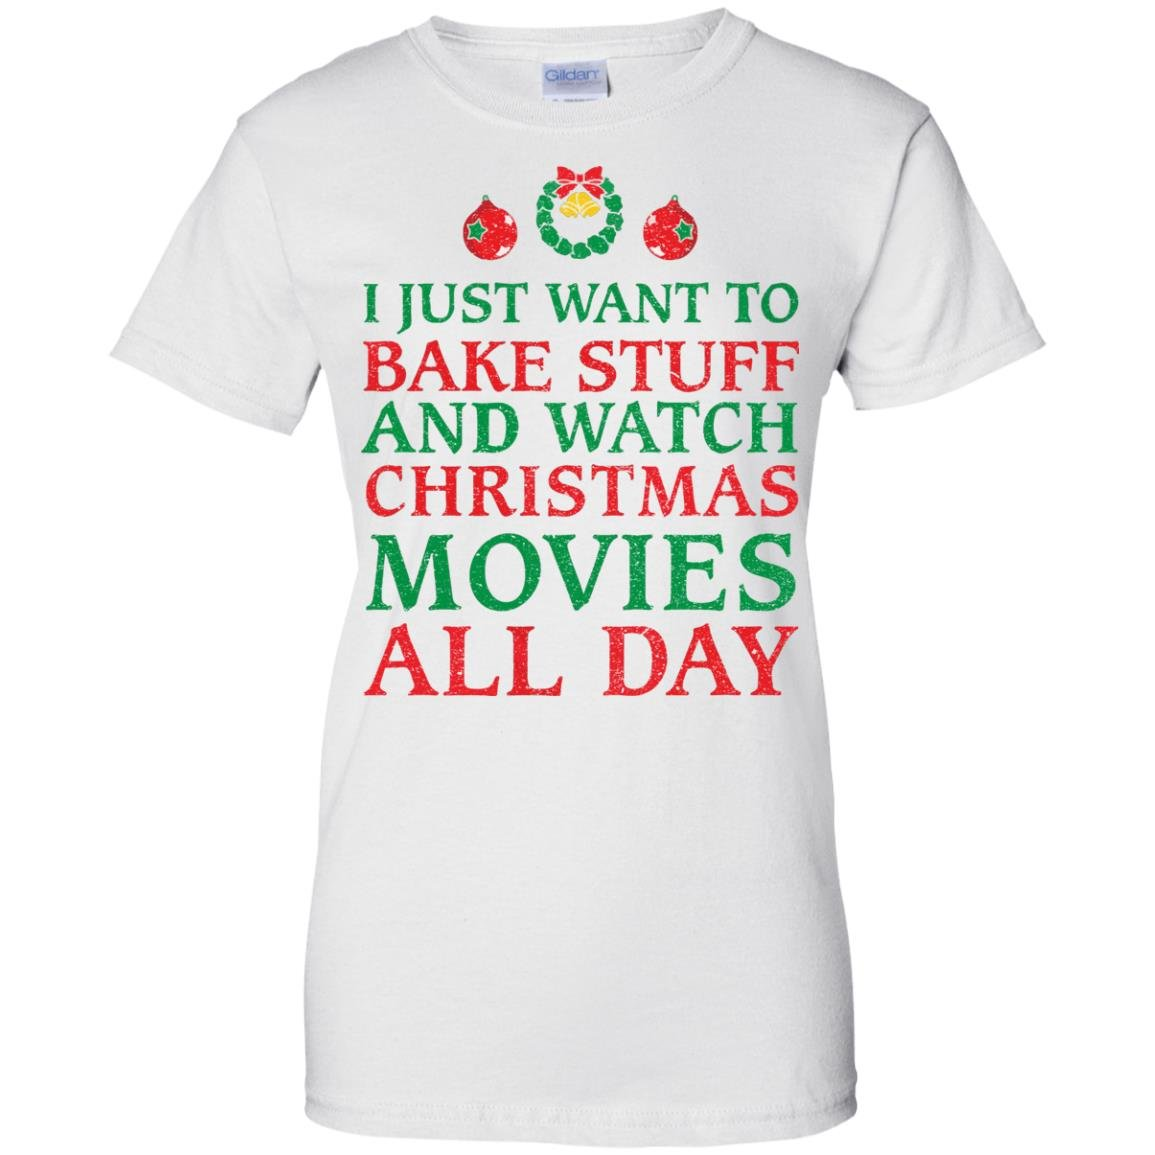 image 2705 - I Just Want to Bake Stuff and Watch Christmas Movie All Day Sweater, Ugly Sweatshirts